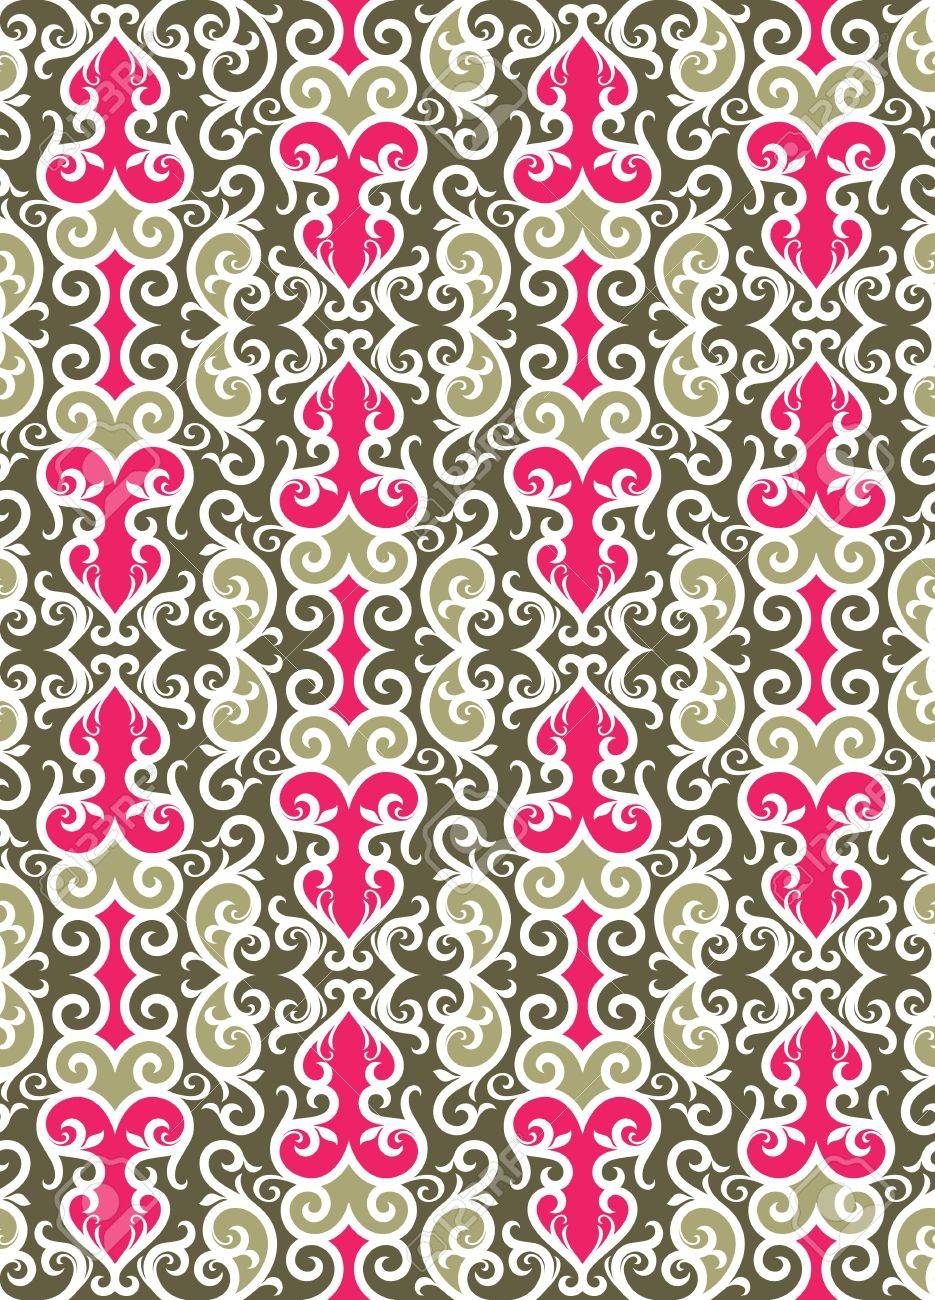 Seamless background from a floral ornament, Fashionable modern wallpaper or textile Stock Vector - 7085358